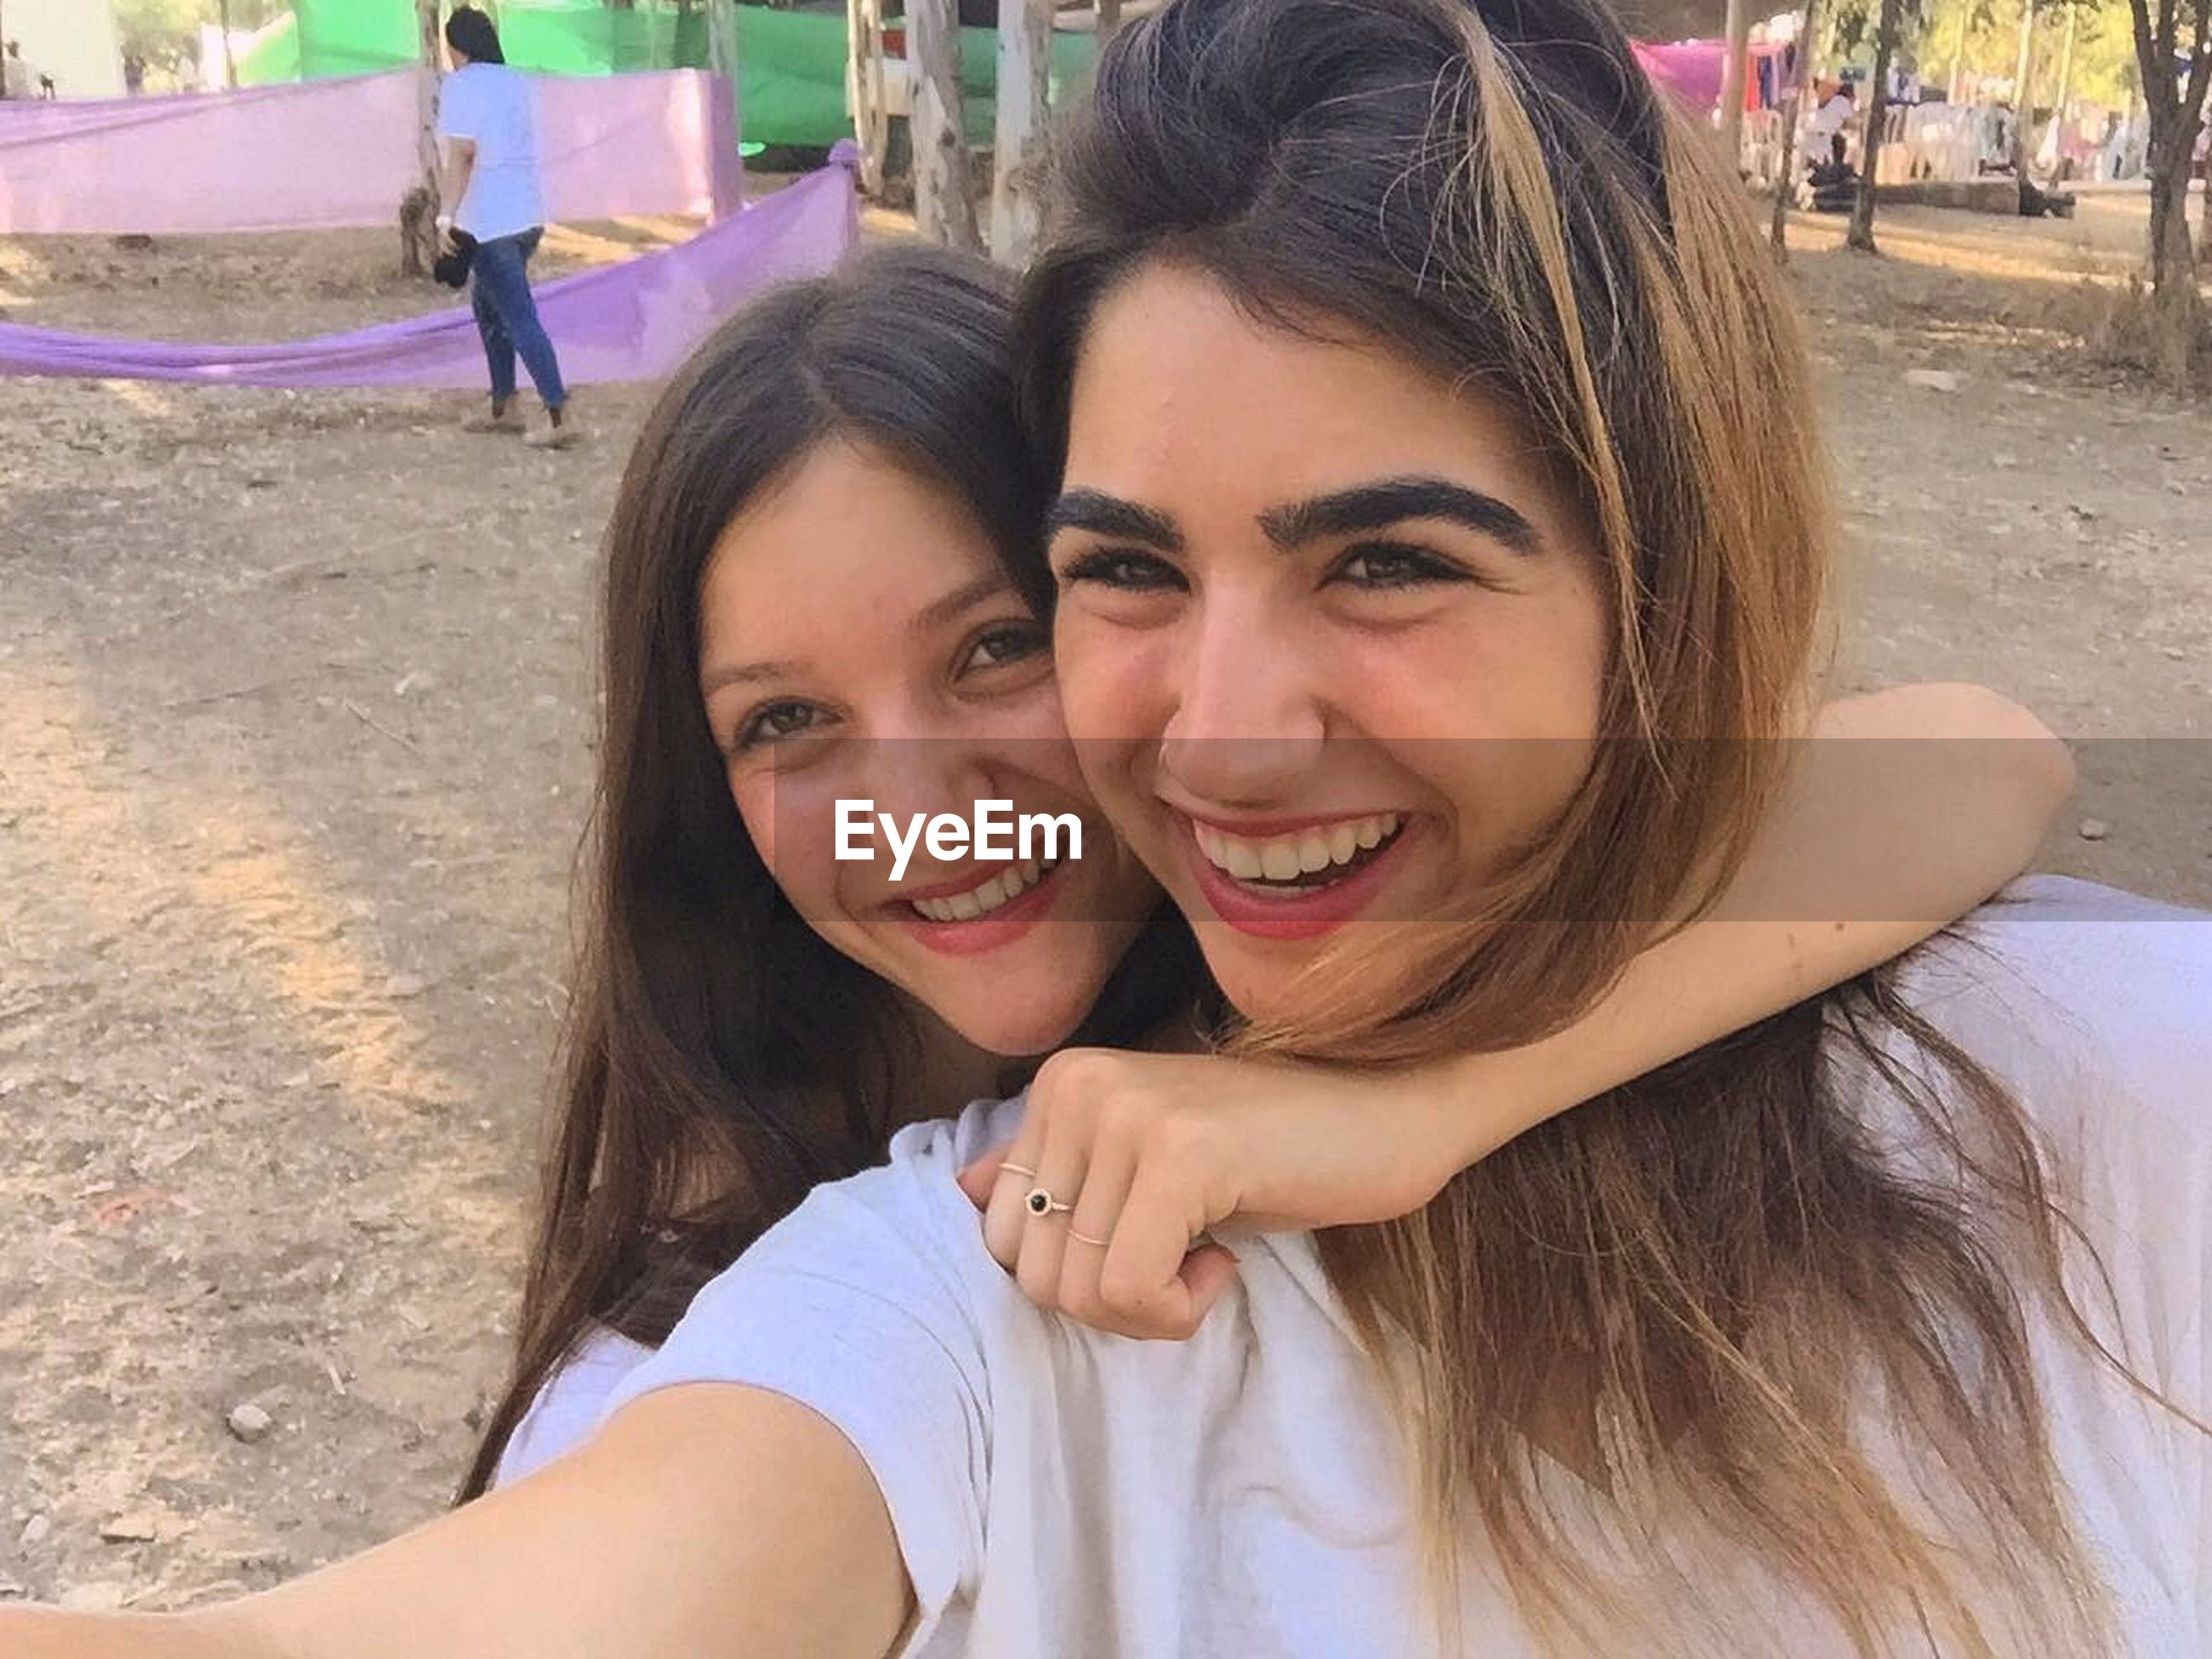 lifestyles, person, leisure activity, portrait, happiness, smiling, front view, casual clothing, toothy smile, enjoyment, long hair, outdoors, day, fun, cute, headshot